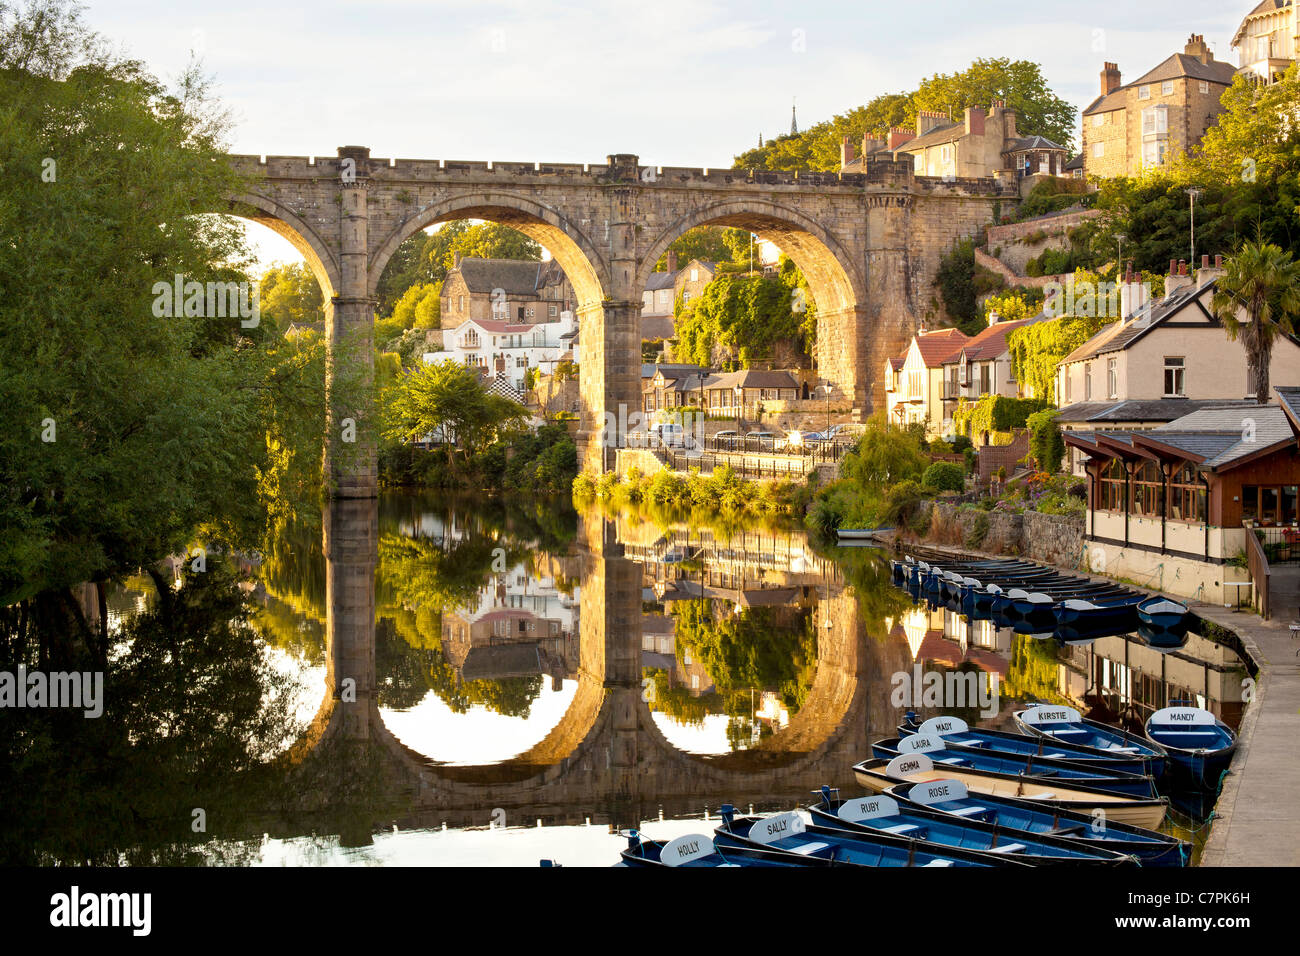 railway-viaduct-over-the-river-nidd-in-k